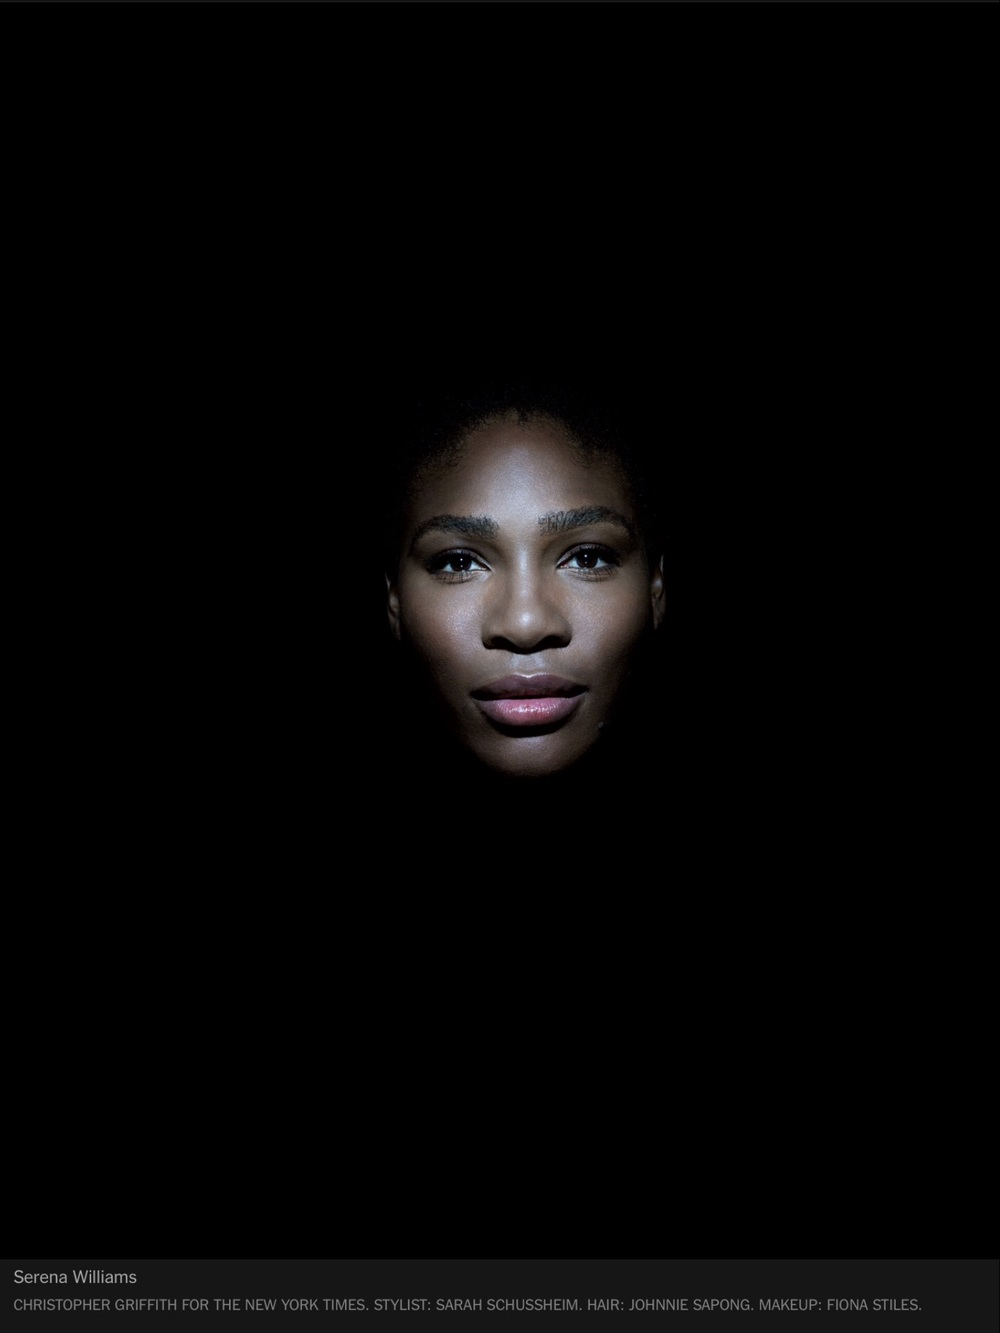 Click below this amazing picture of Serena to read a NY Times Magazine cover article about her and a Sports Illustrated cover article from August 2015.